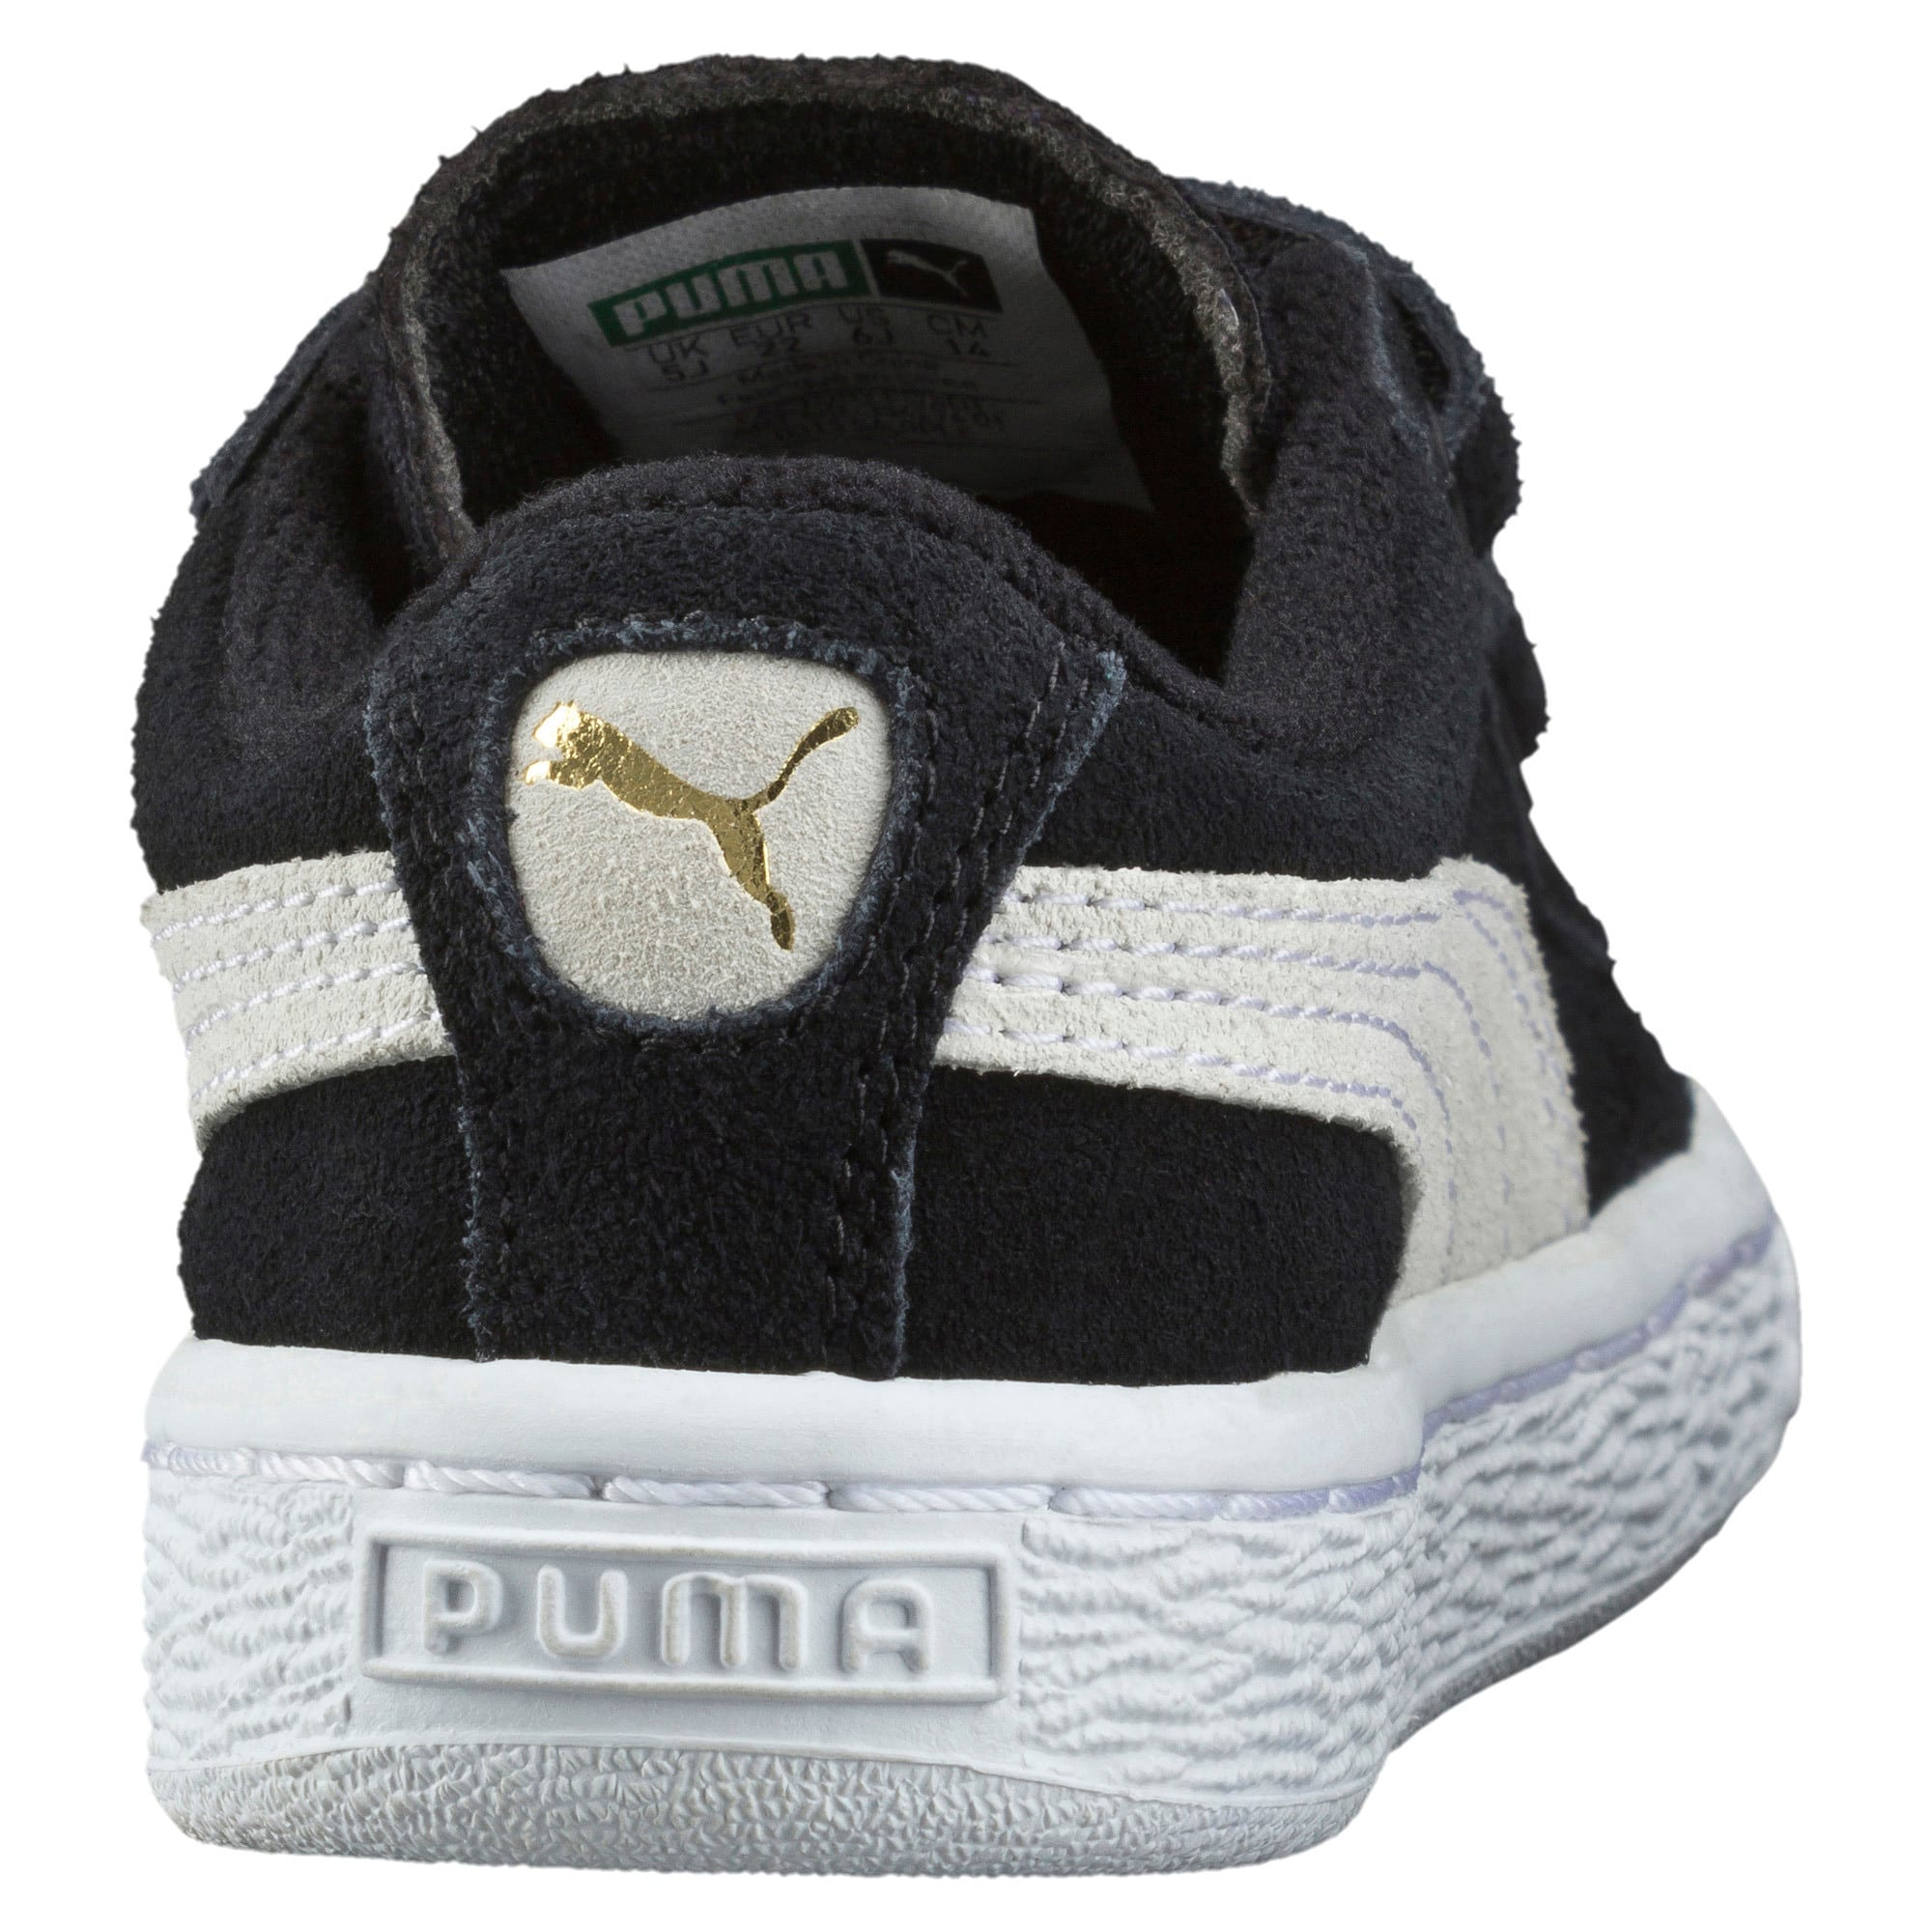 Suede AC Toddler Shoes, black-white, large